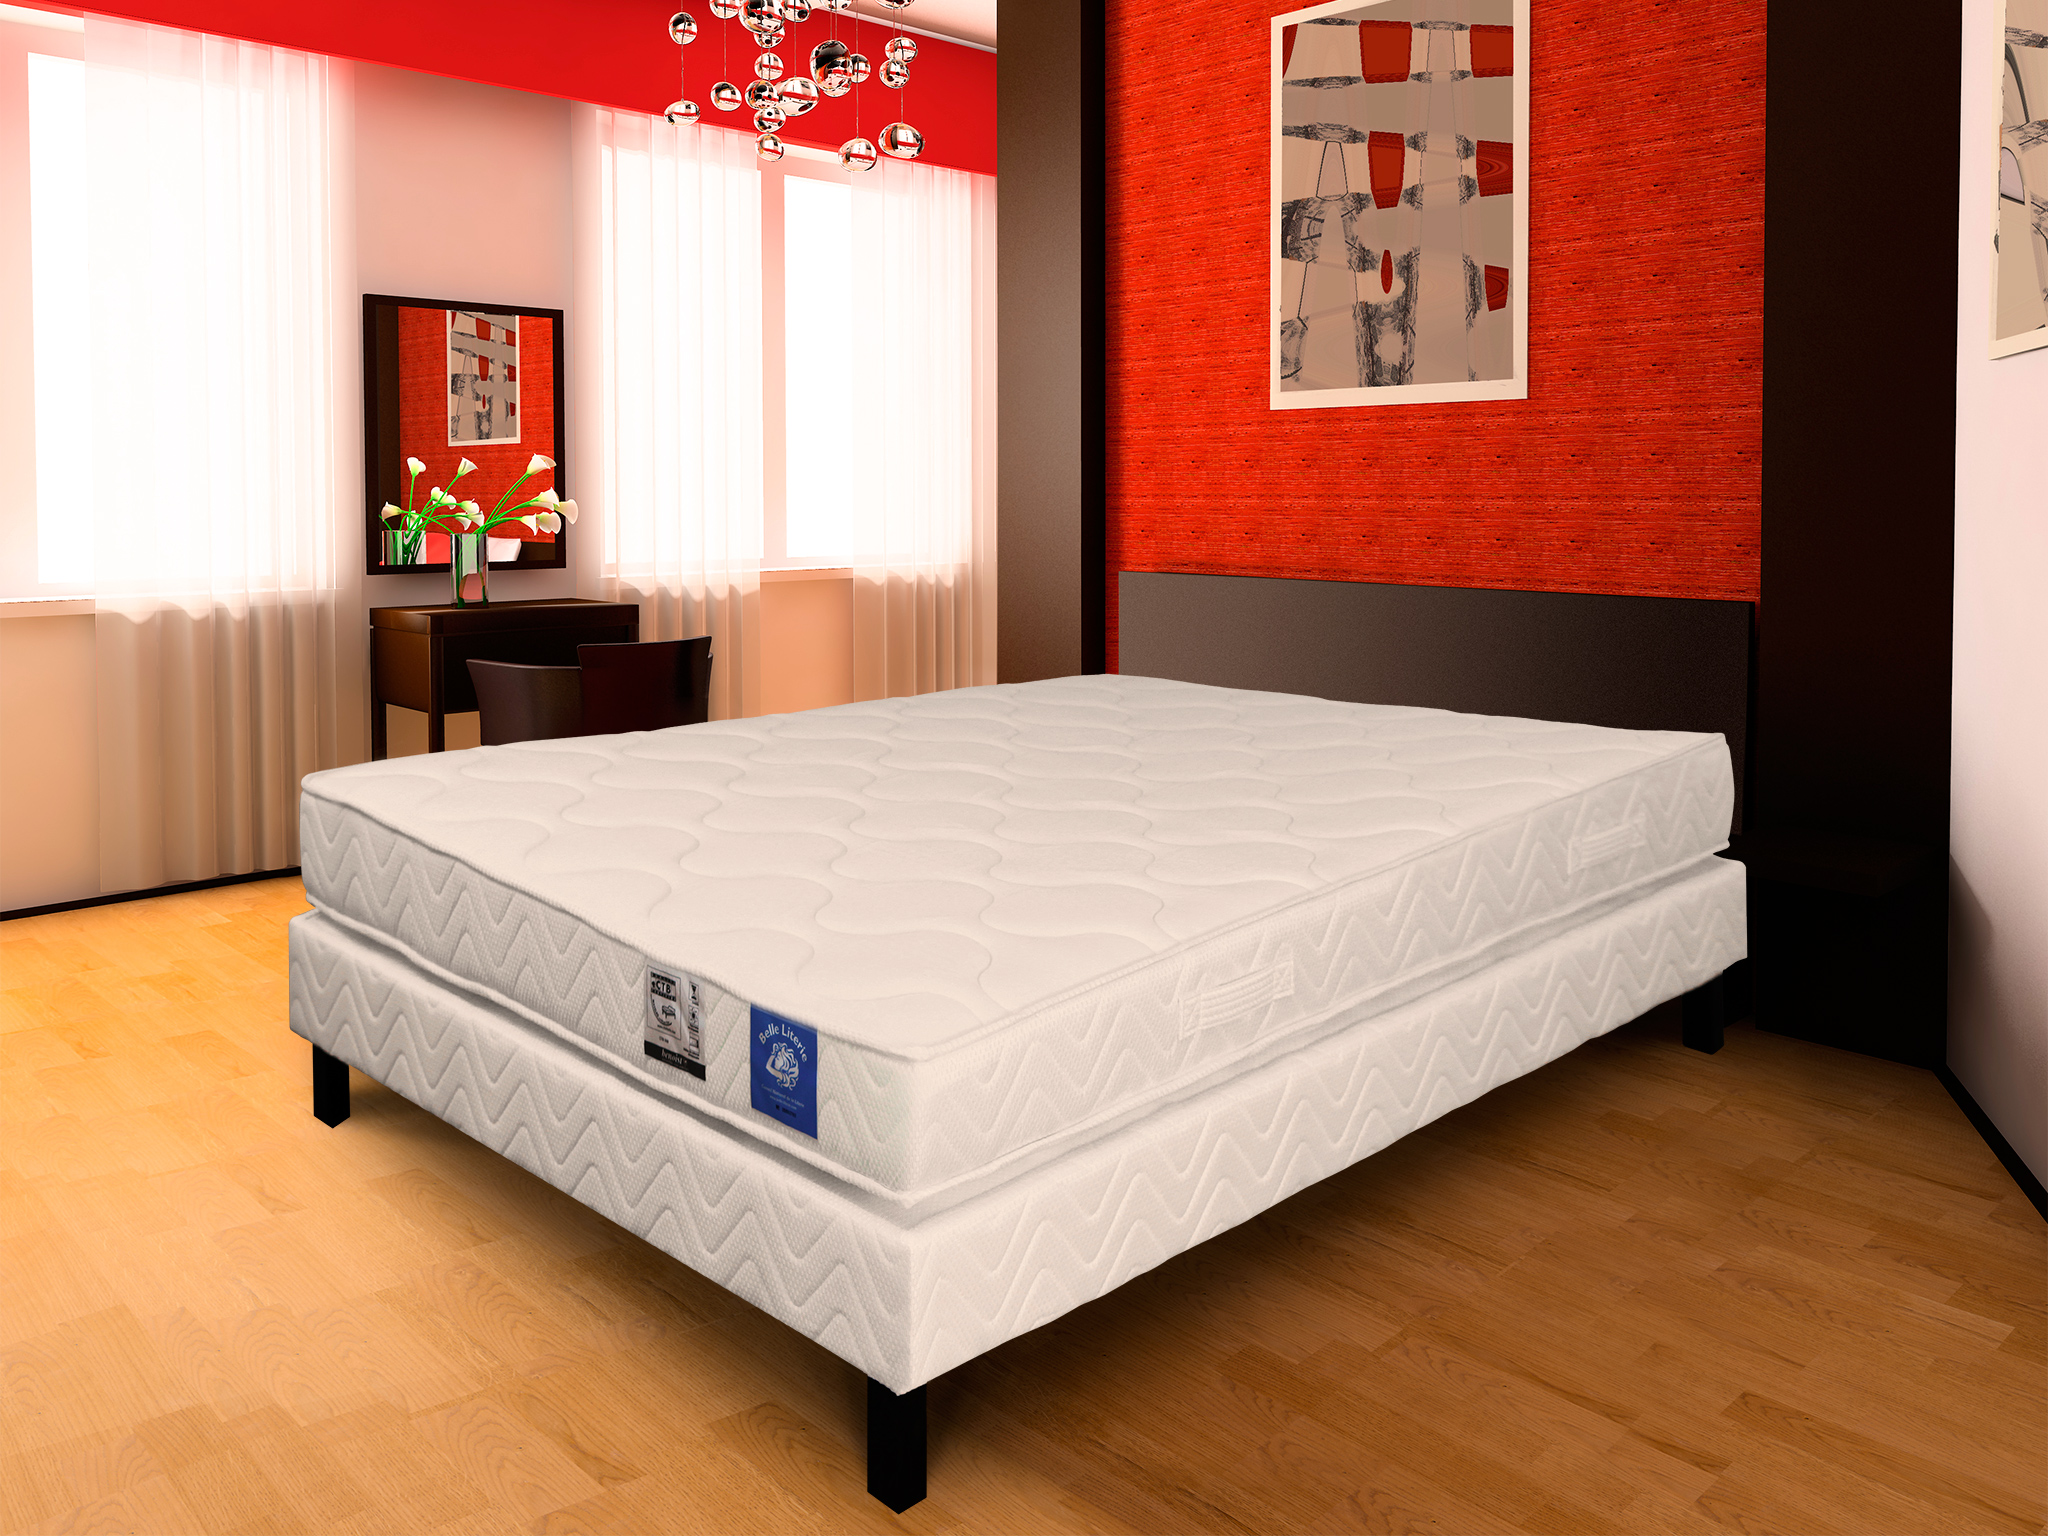 matelas mousse m moire de forme 90x190 avec garnissage m moire de forme. Black Bedroom Furniture Sets. Home Design Ideas